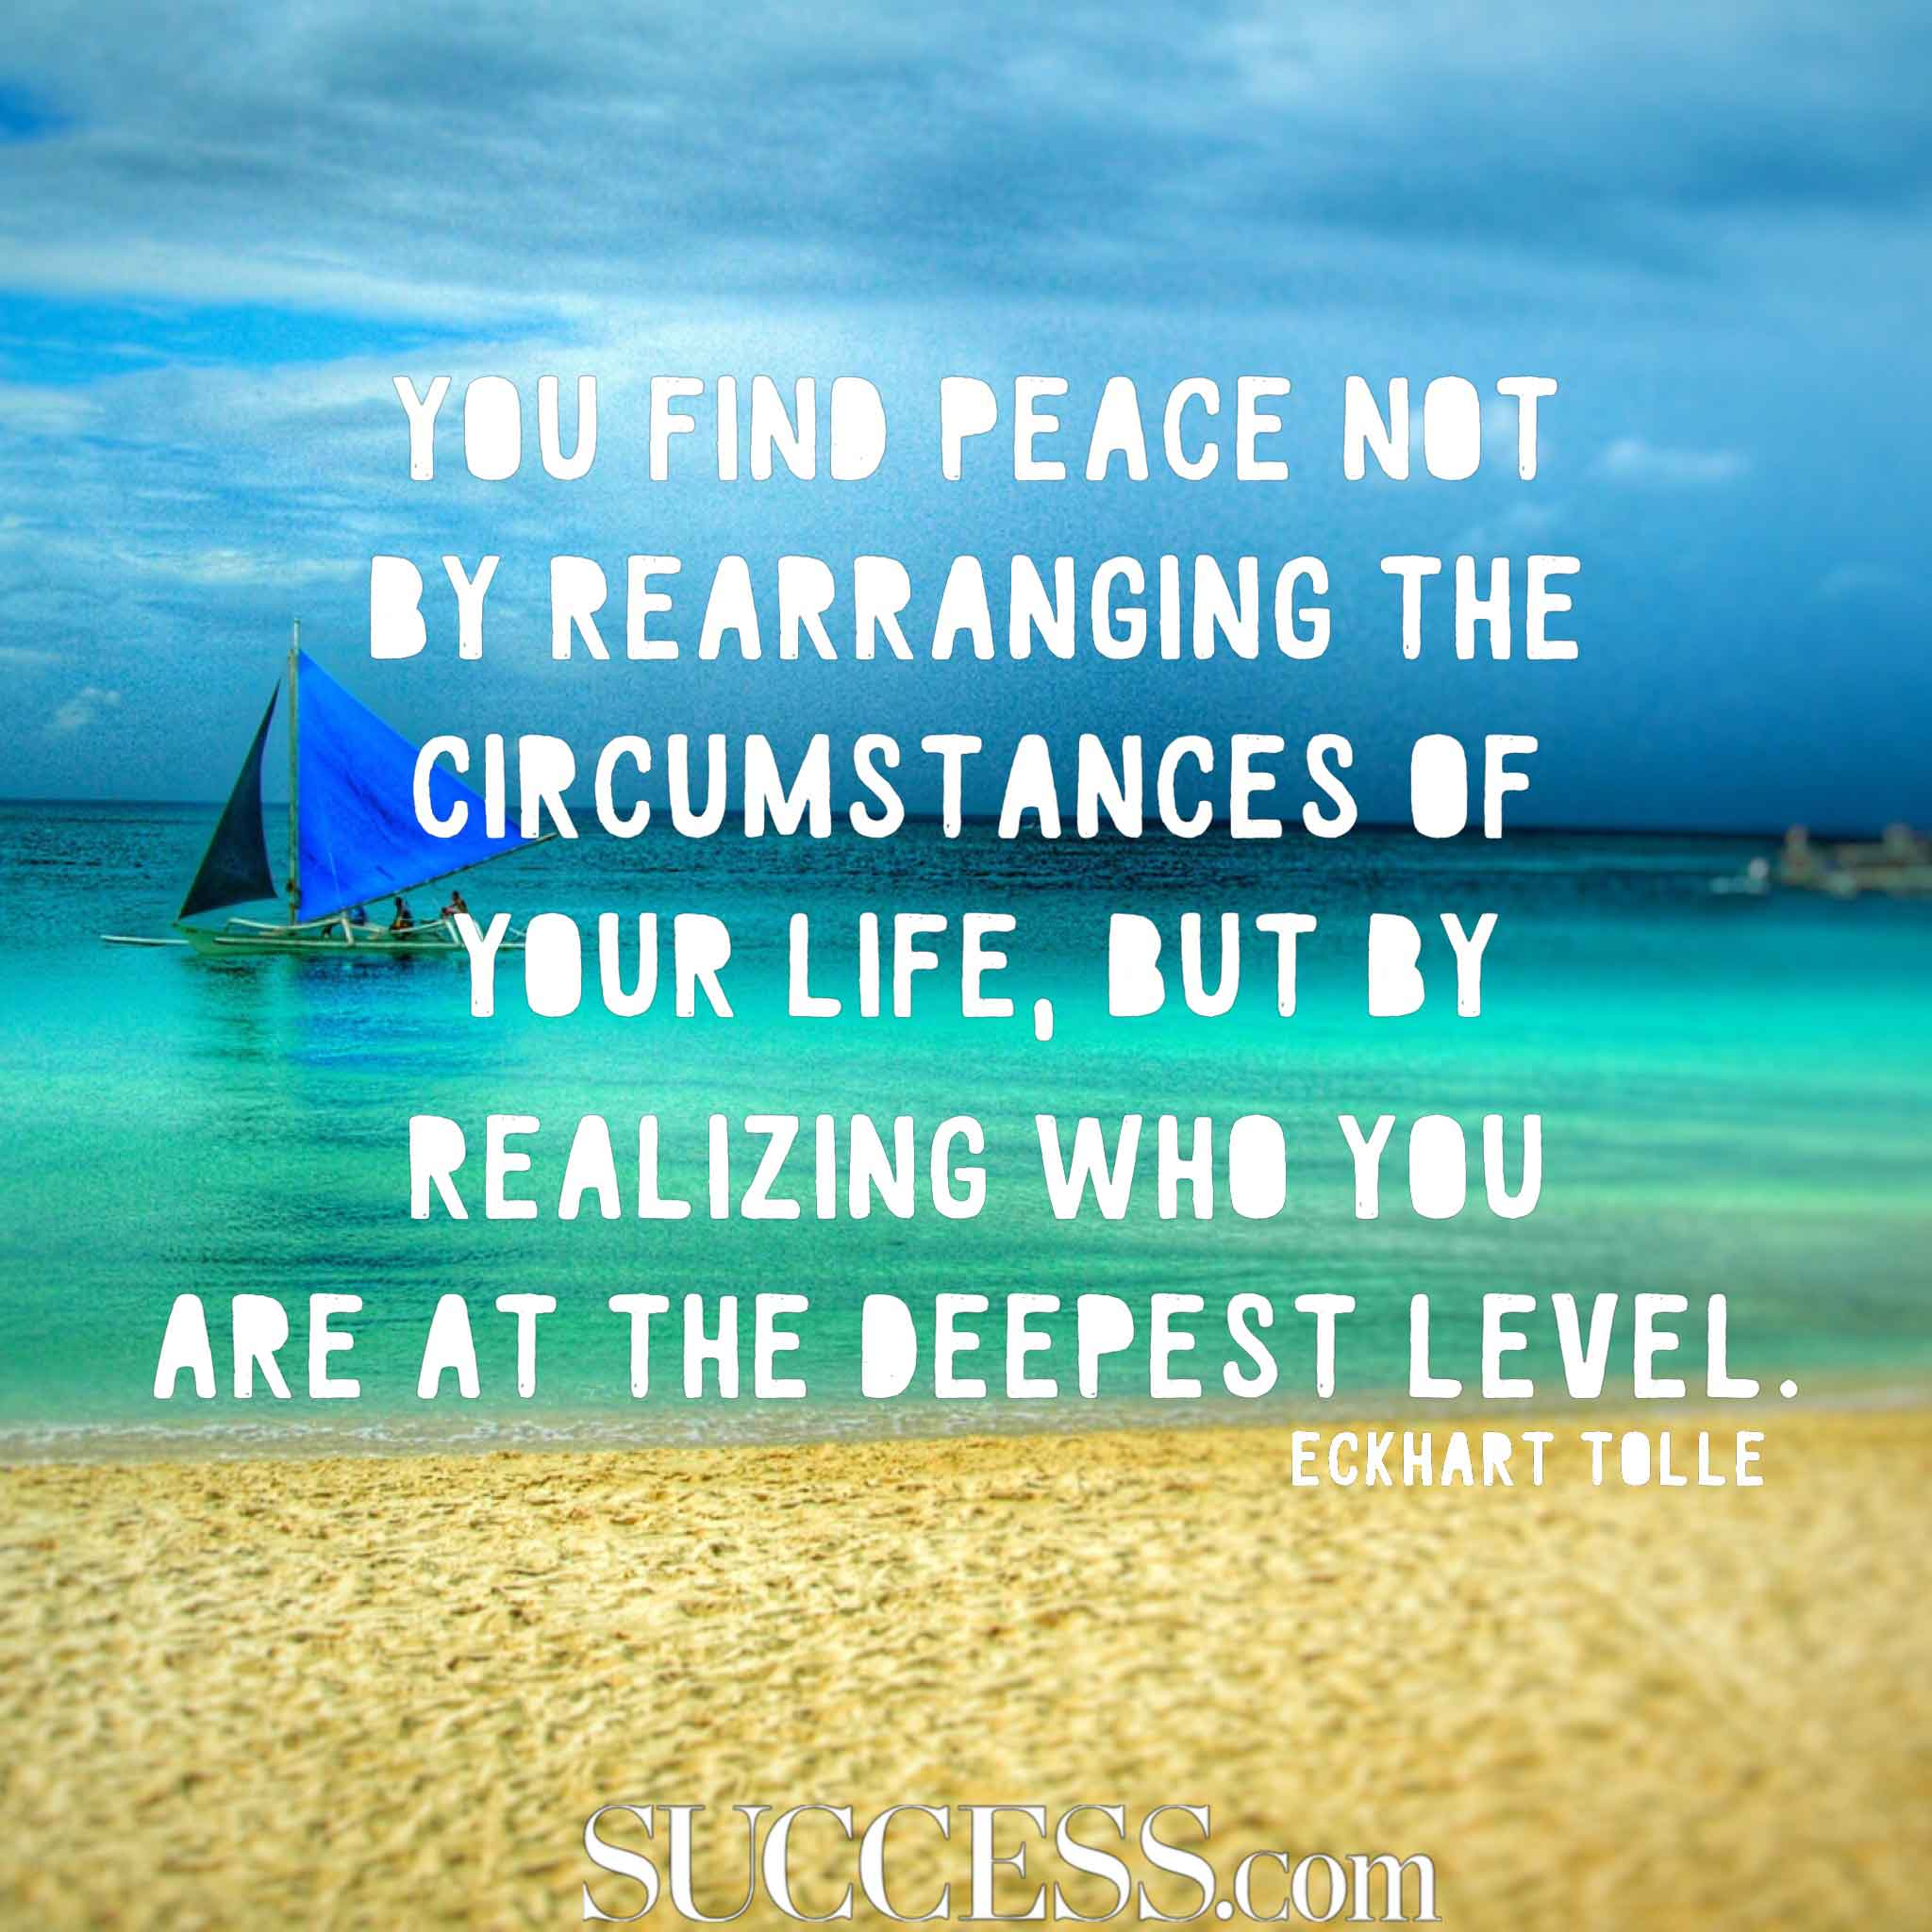 Peaceful Life Quotes 17 Quotes About Finding Inner Peace Peaceful Life Quotes